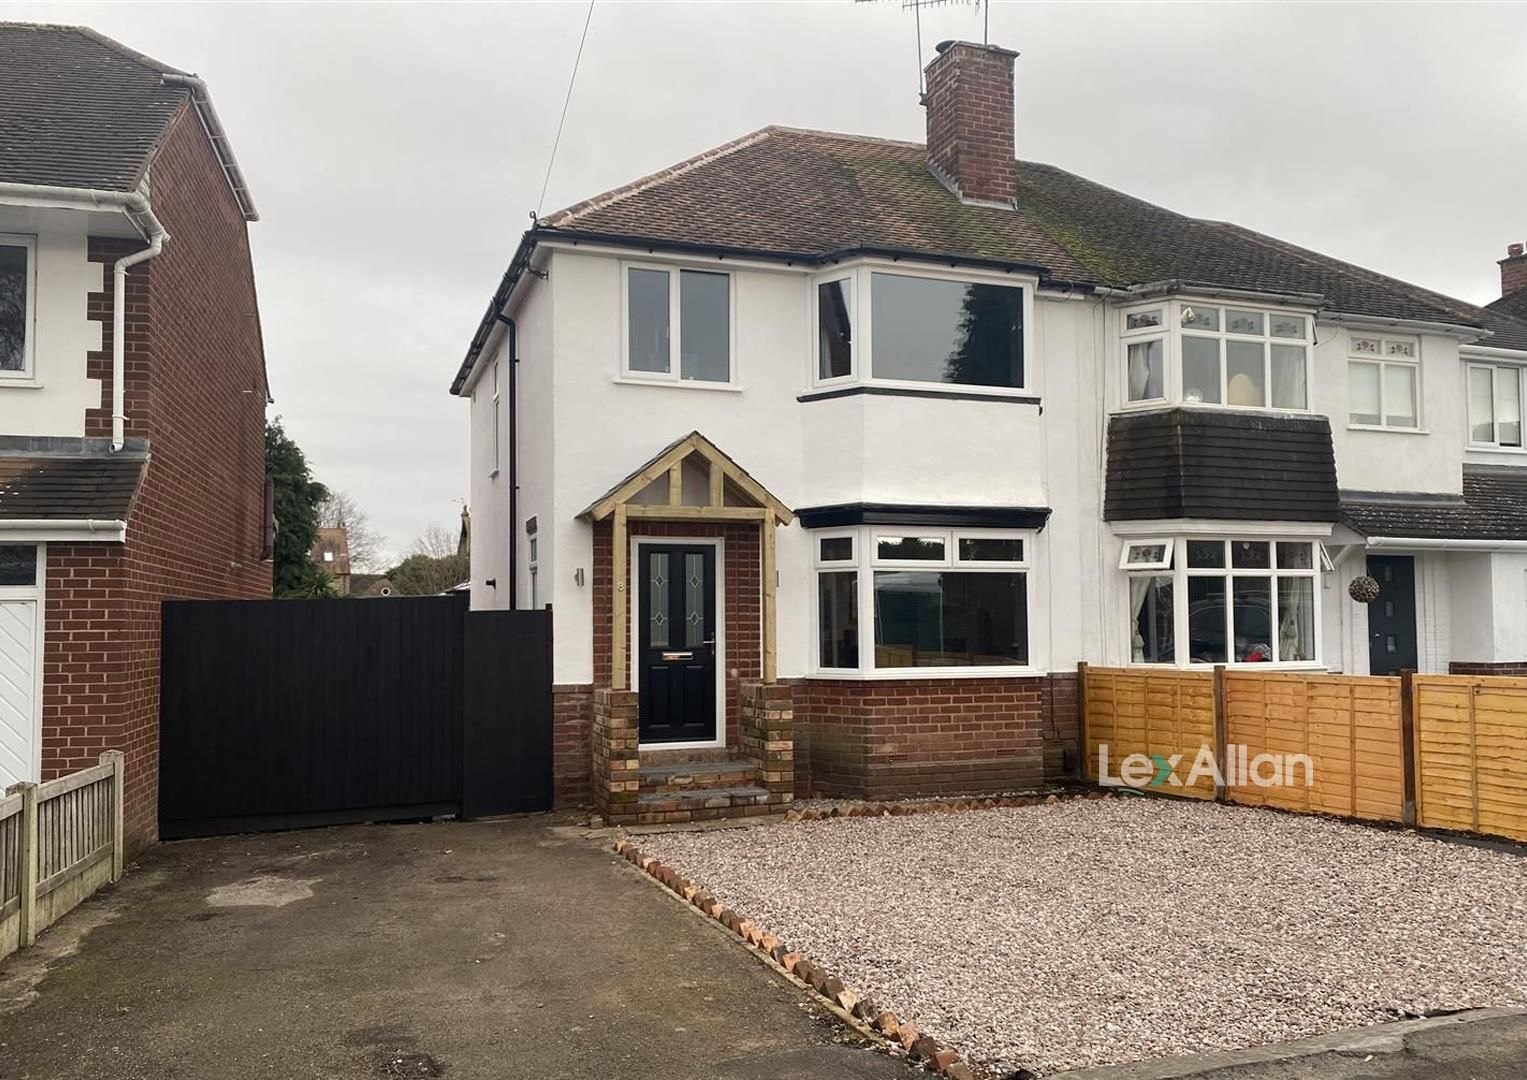 3 bed semi-detached for sale, DY8